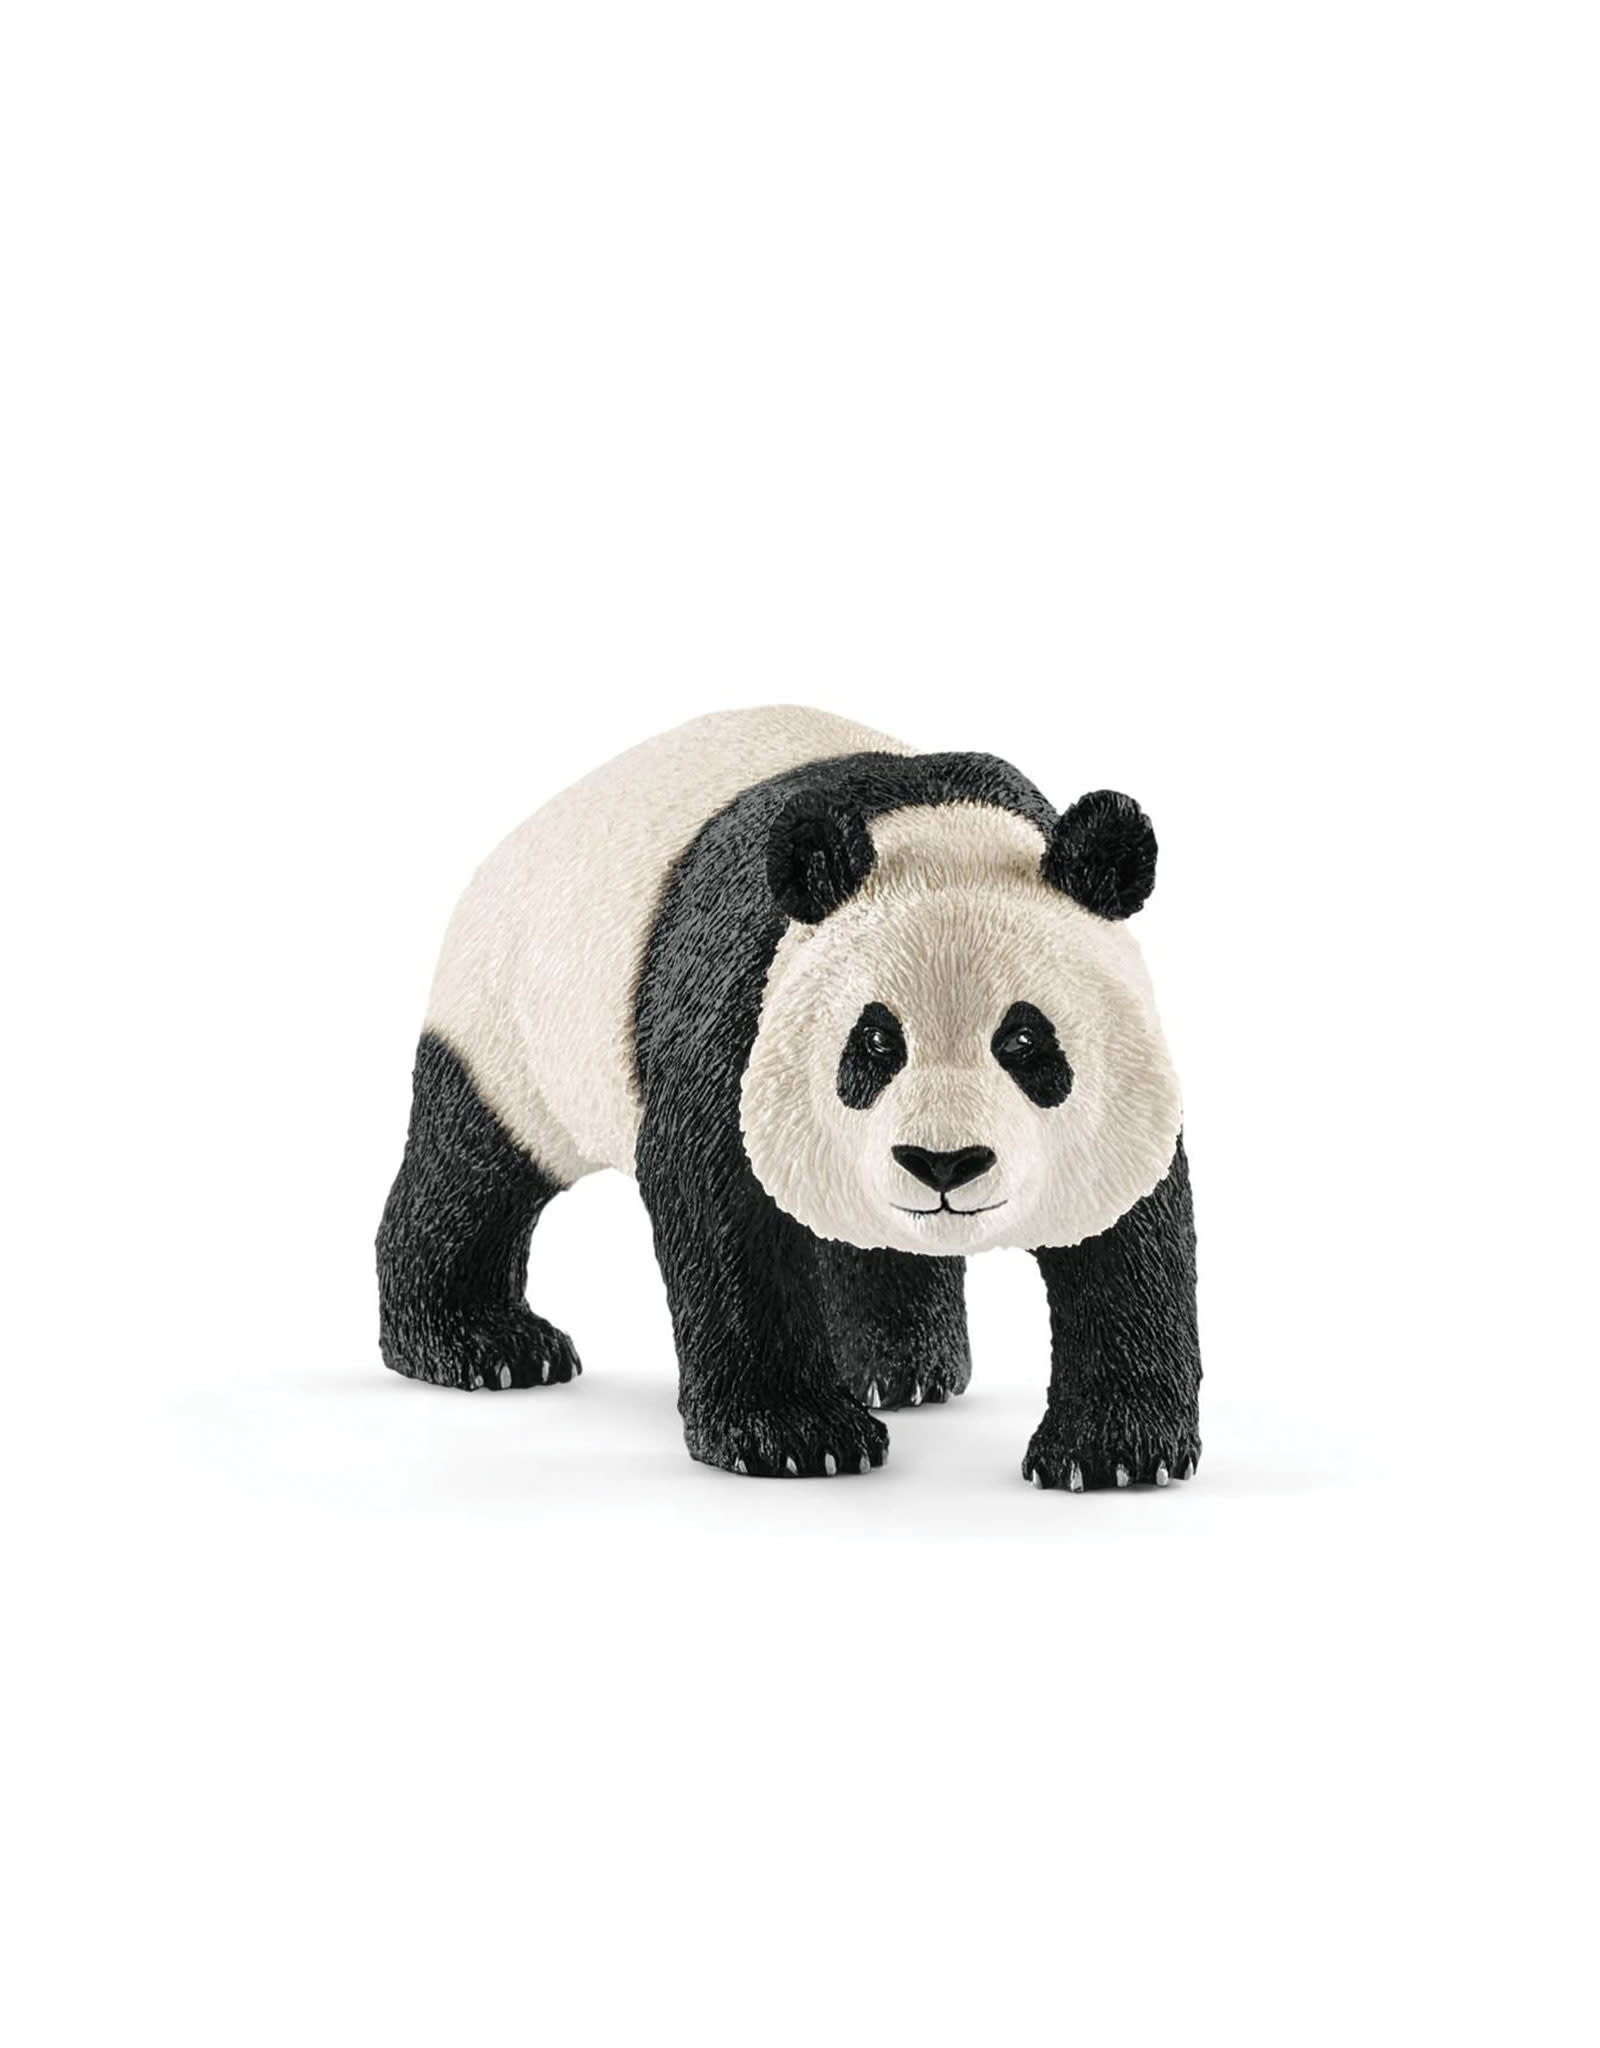 Schleich Animal - Giant Panda Male